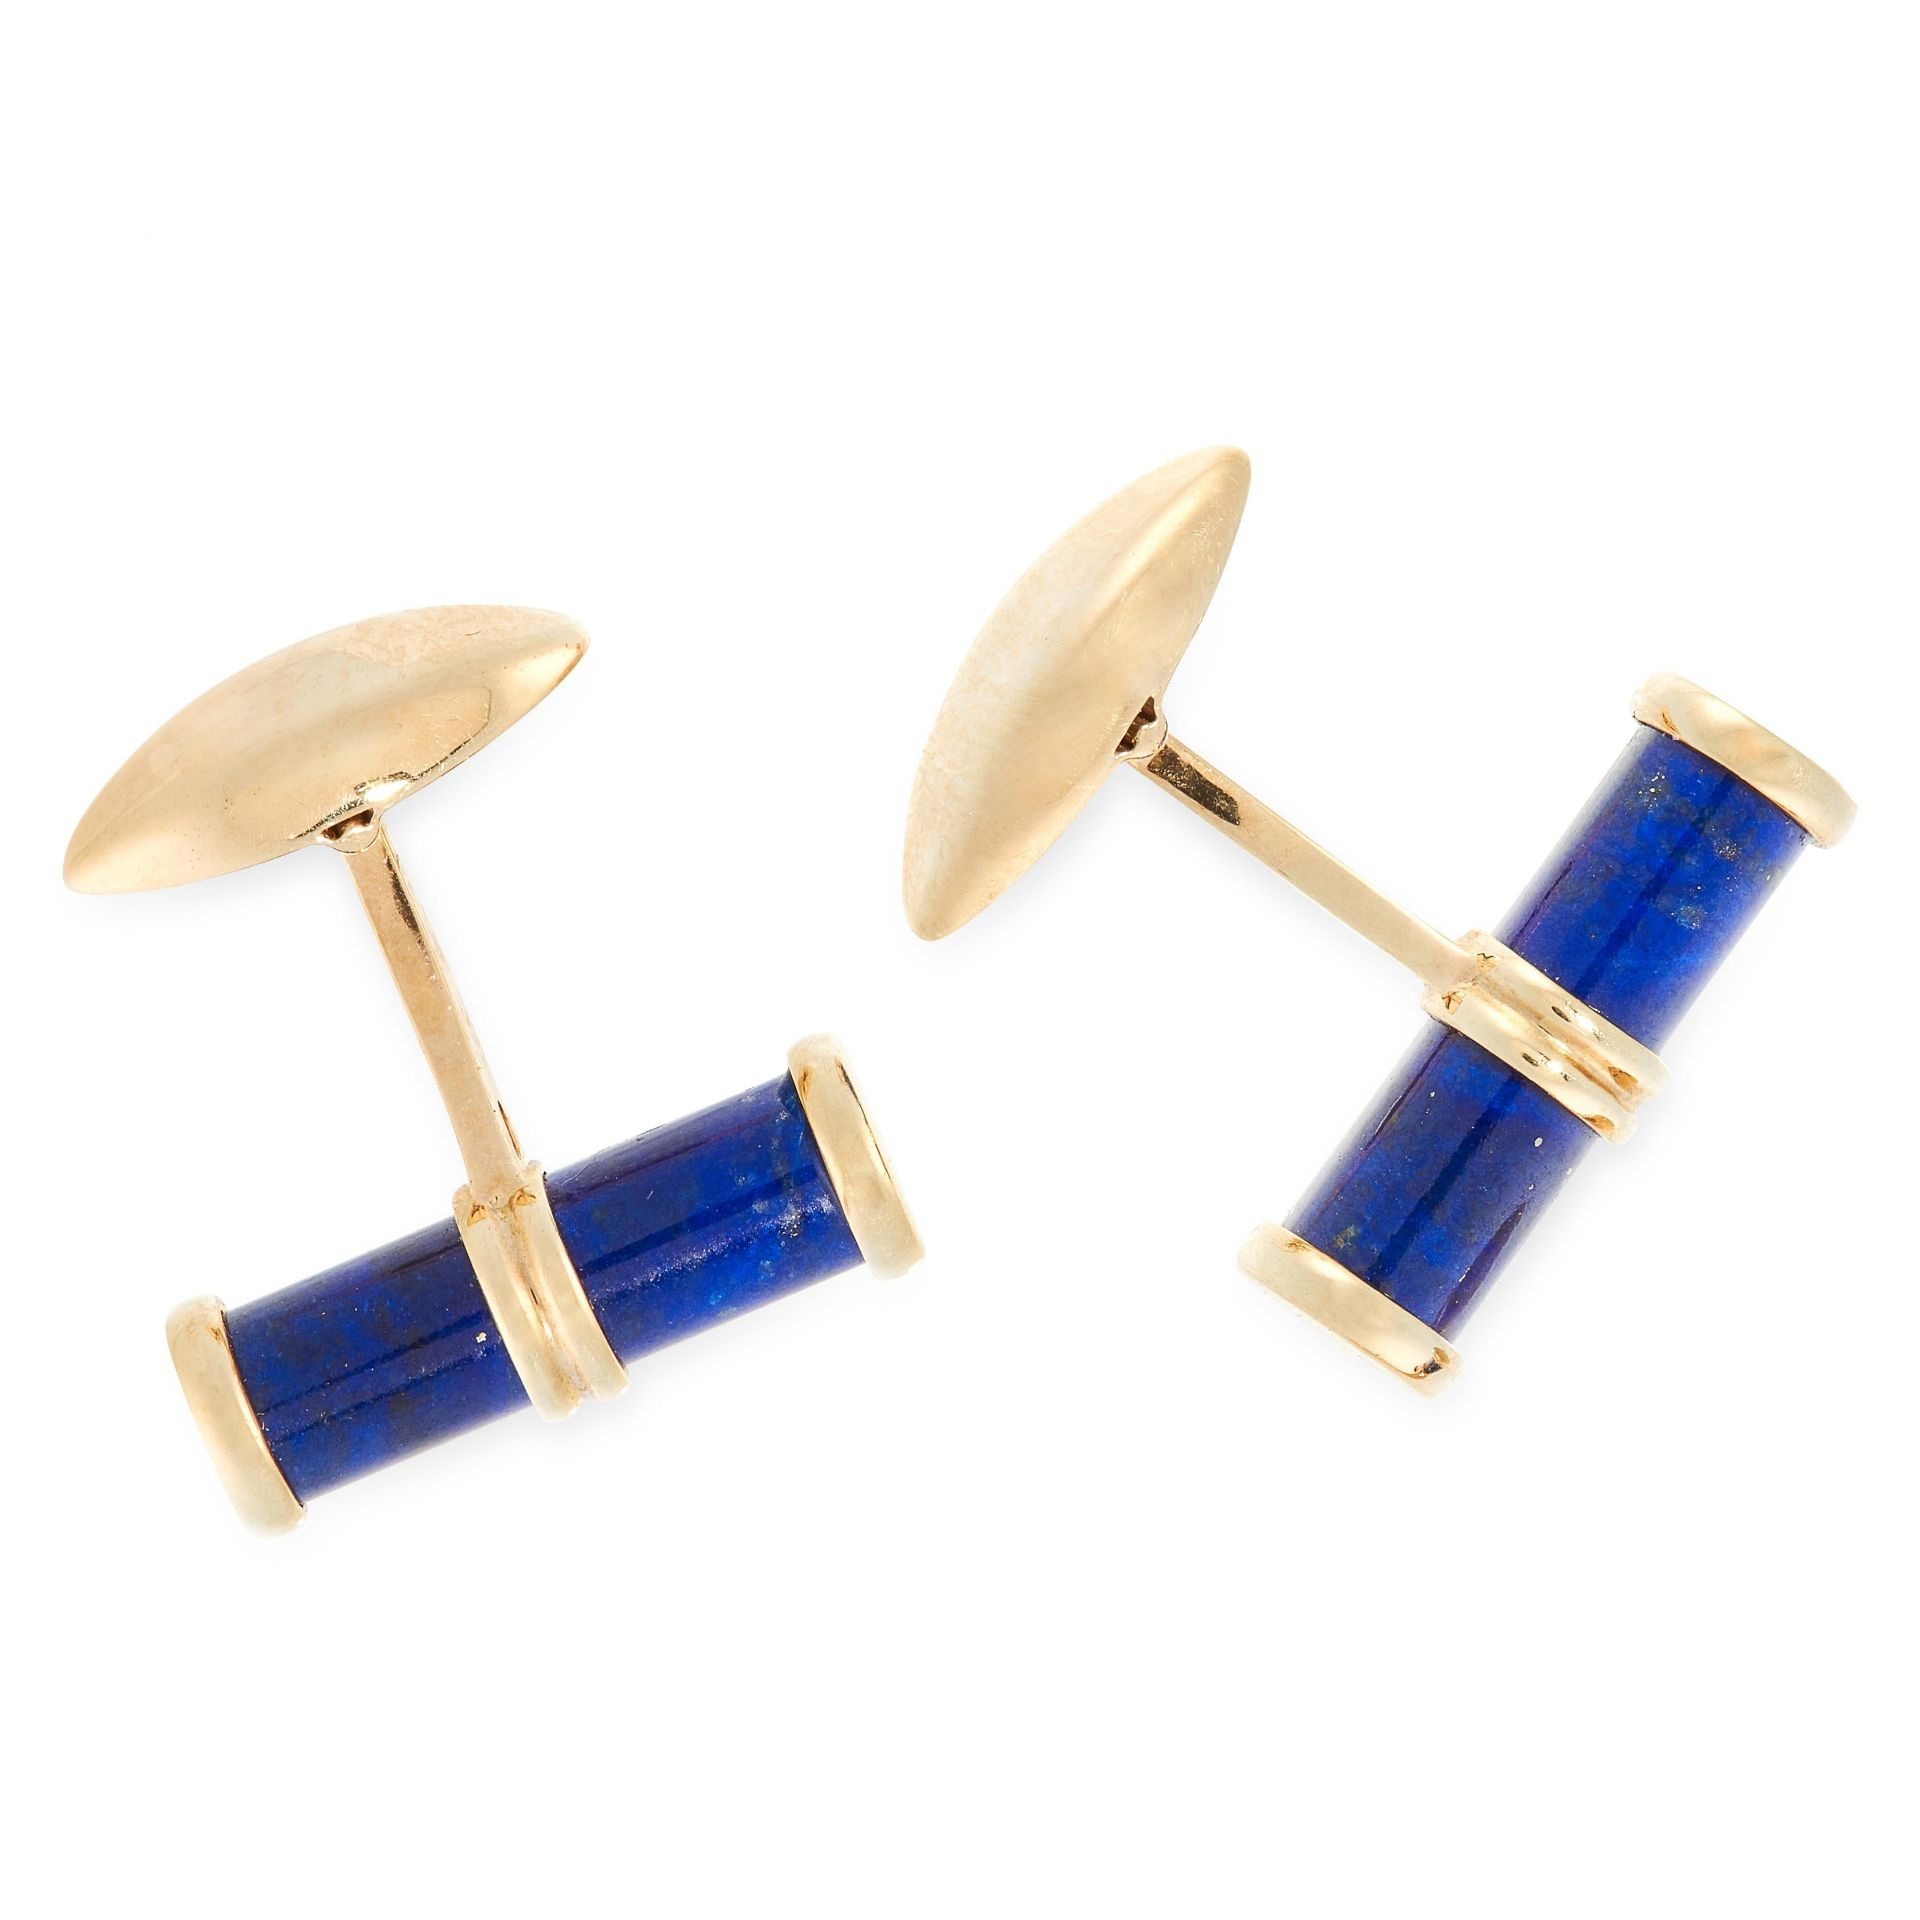 A PAIR OF VINTAGE LAPIS LAZULI CUFFLINKS, 1949 in yellow gold, each set with a polished baton of